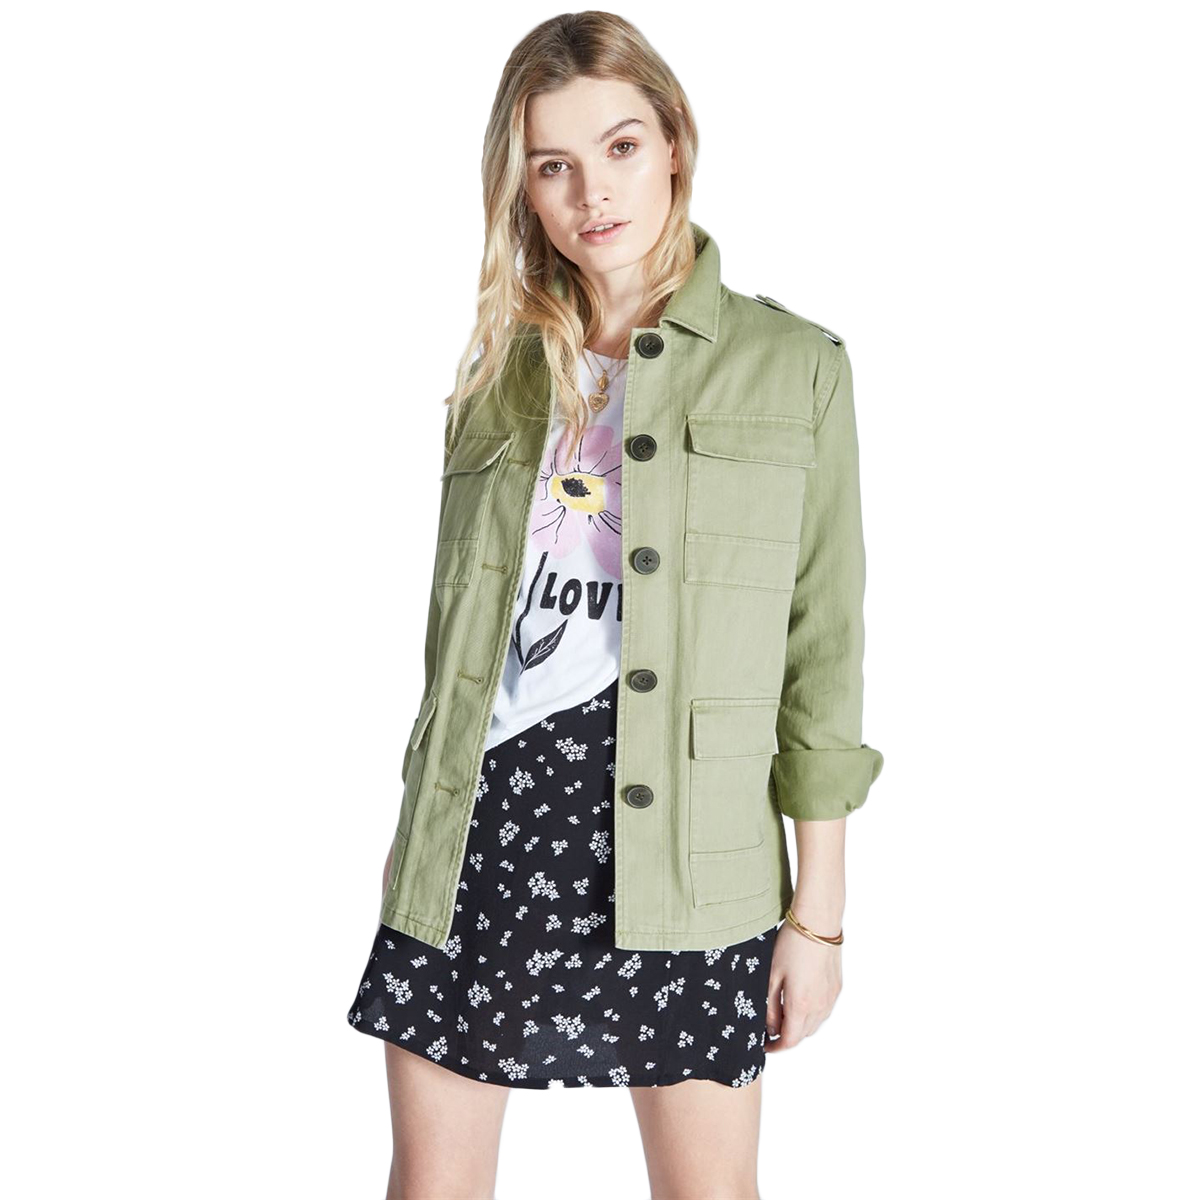 Jack Wills Women's Garrowby Utility Jacket - Green, 2